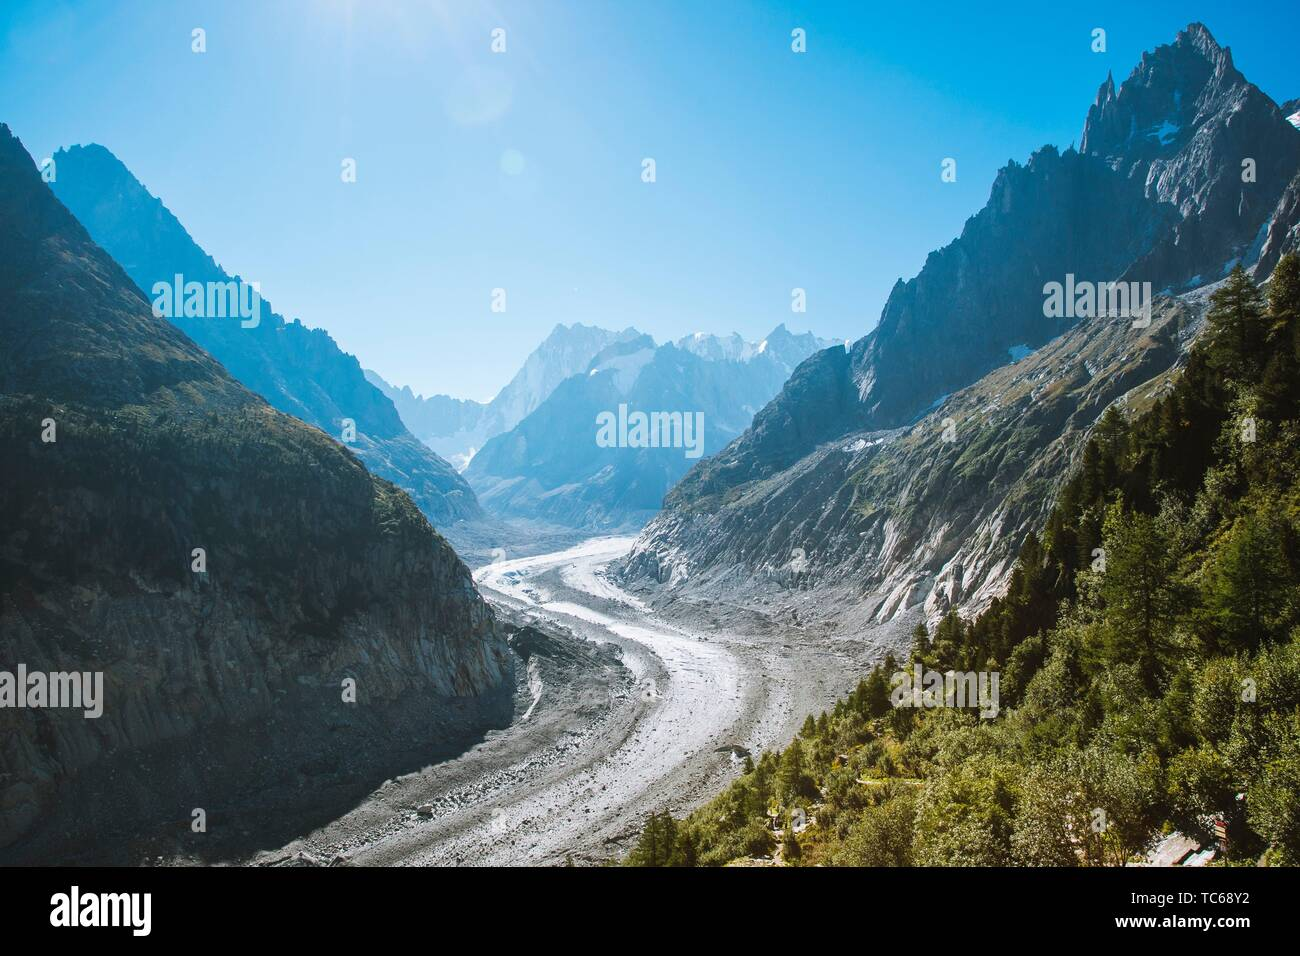 The Mer de Glace (''Sea of Ice'') is a valley glacier located on the northern slopes of the Mont Blanc massif, in the French Alps. It is 7. 5 km long - Stock Image